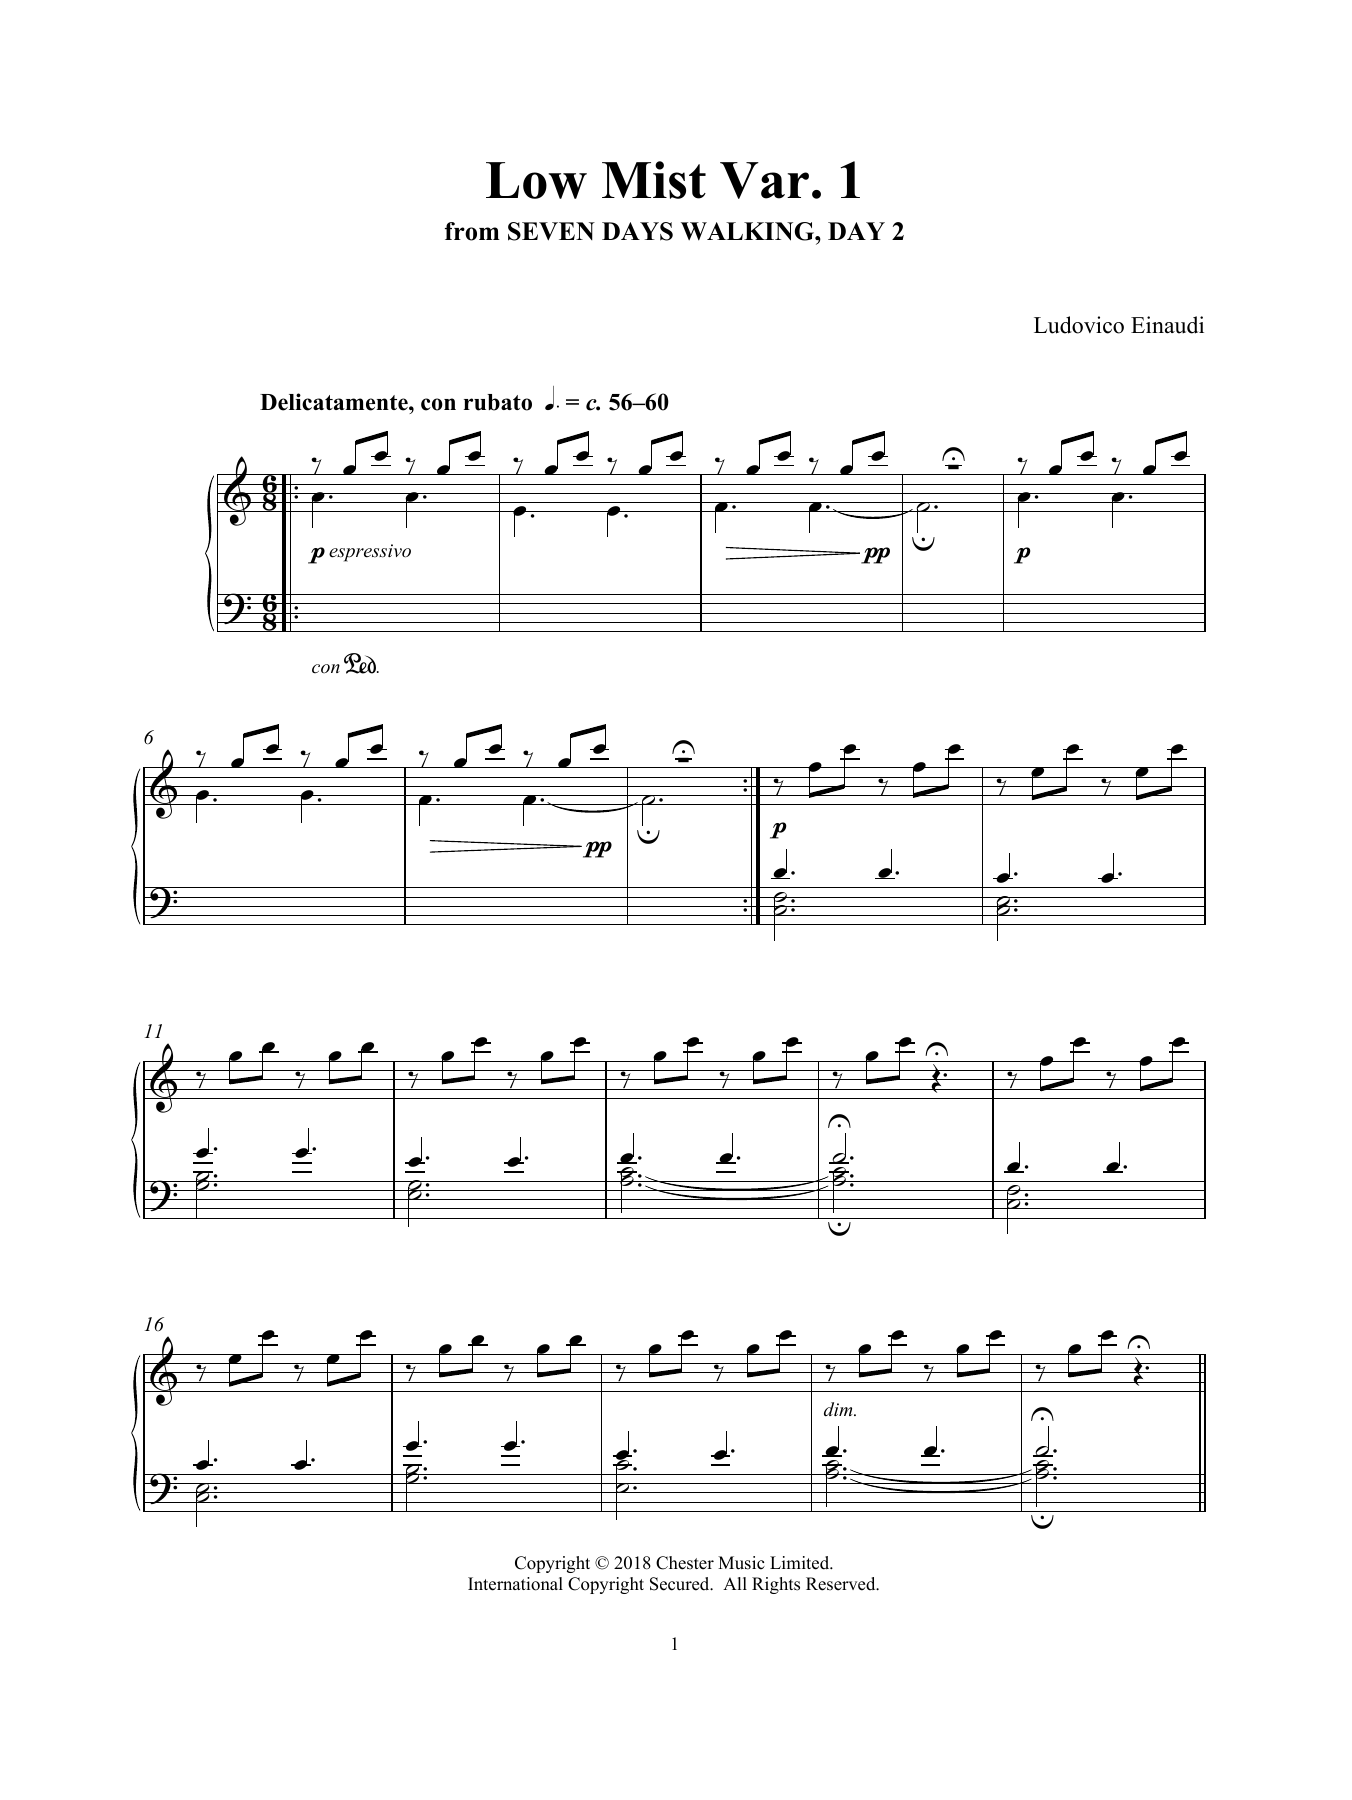 Ludovico Einaudi 'Low Mist Var  1 (from Seven Days Walking: Day 2)' Sheet  Music Notes, Chords | Download Printable Piano Solo - SKU: 412764